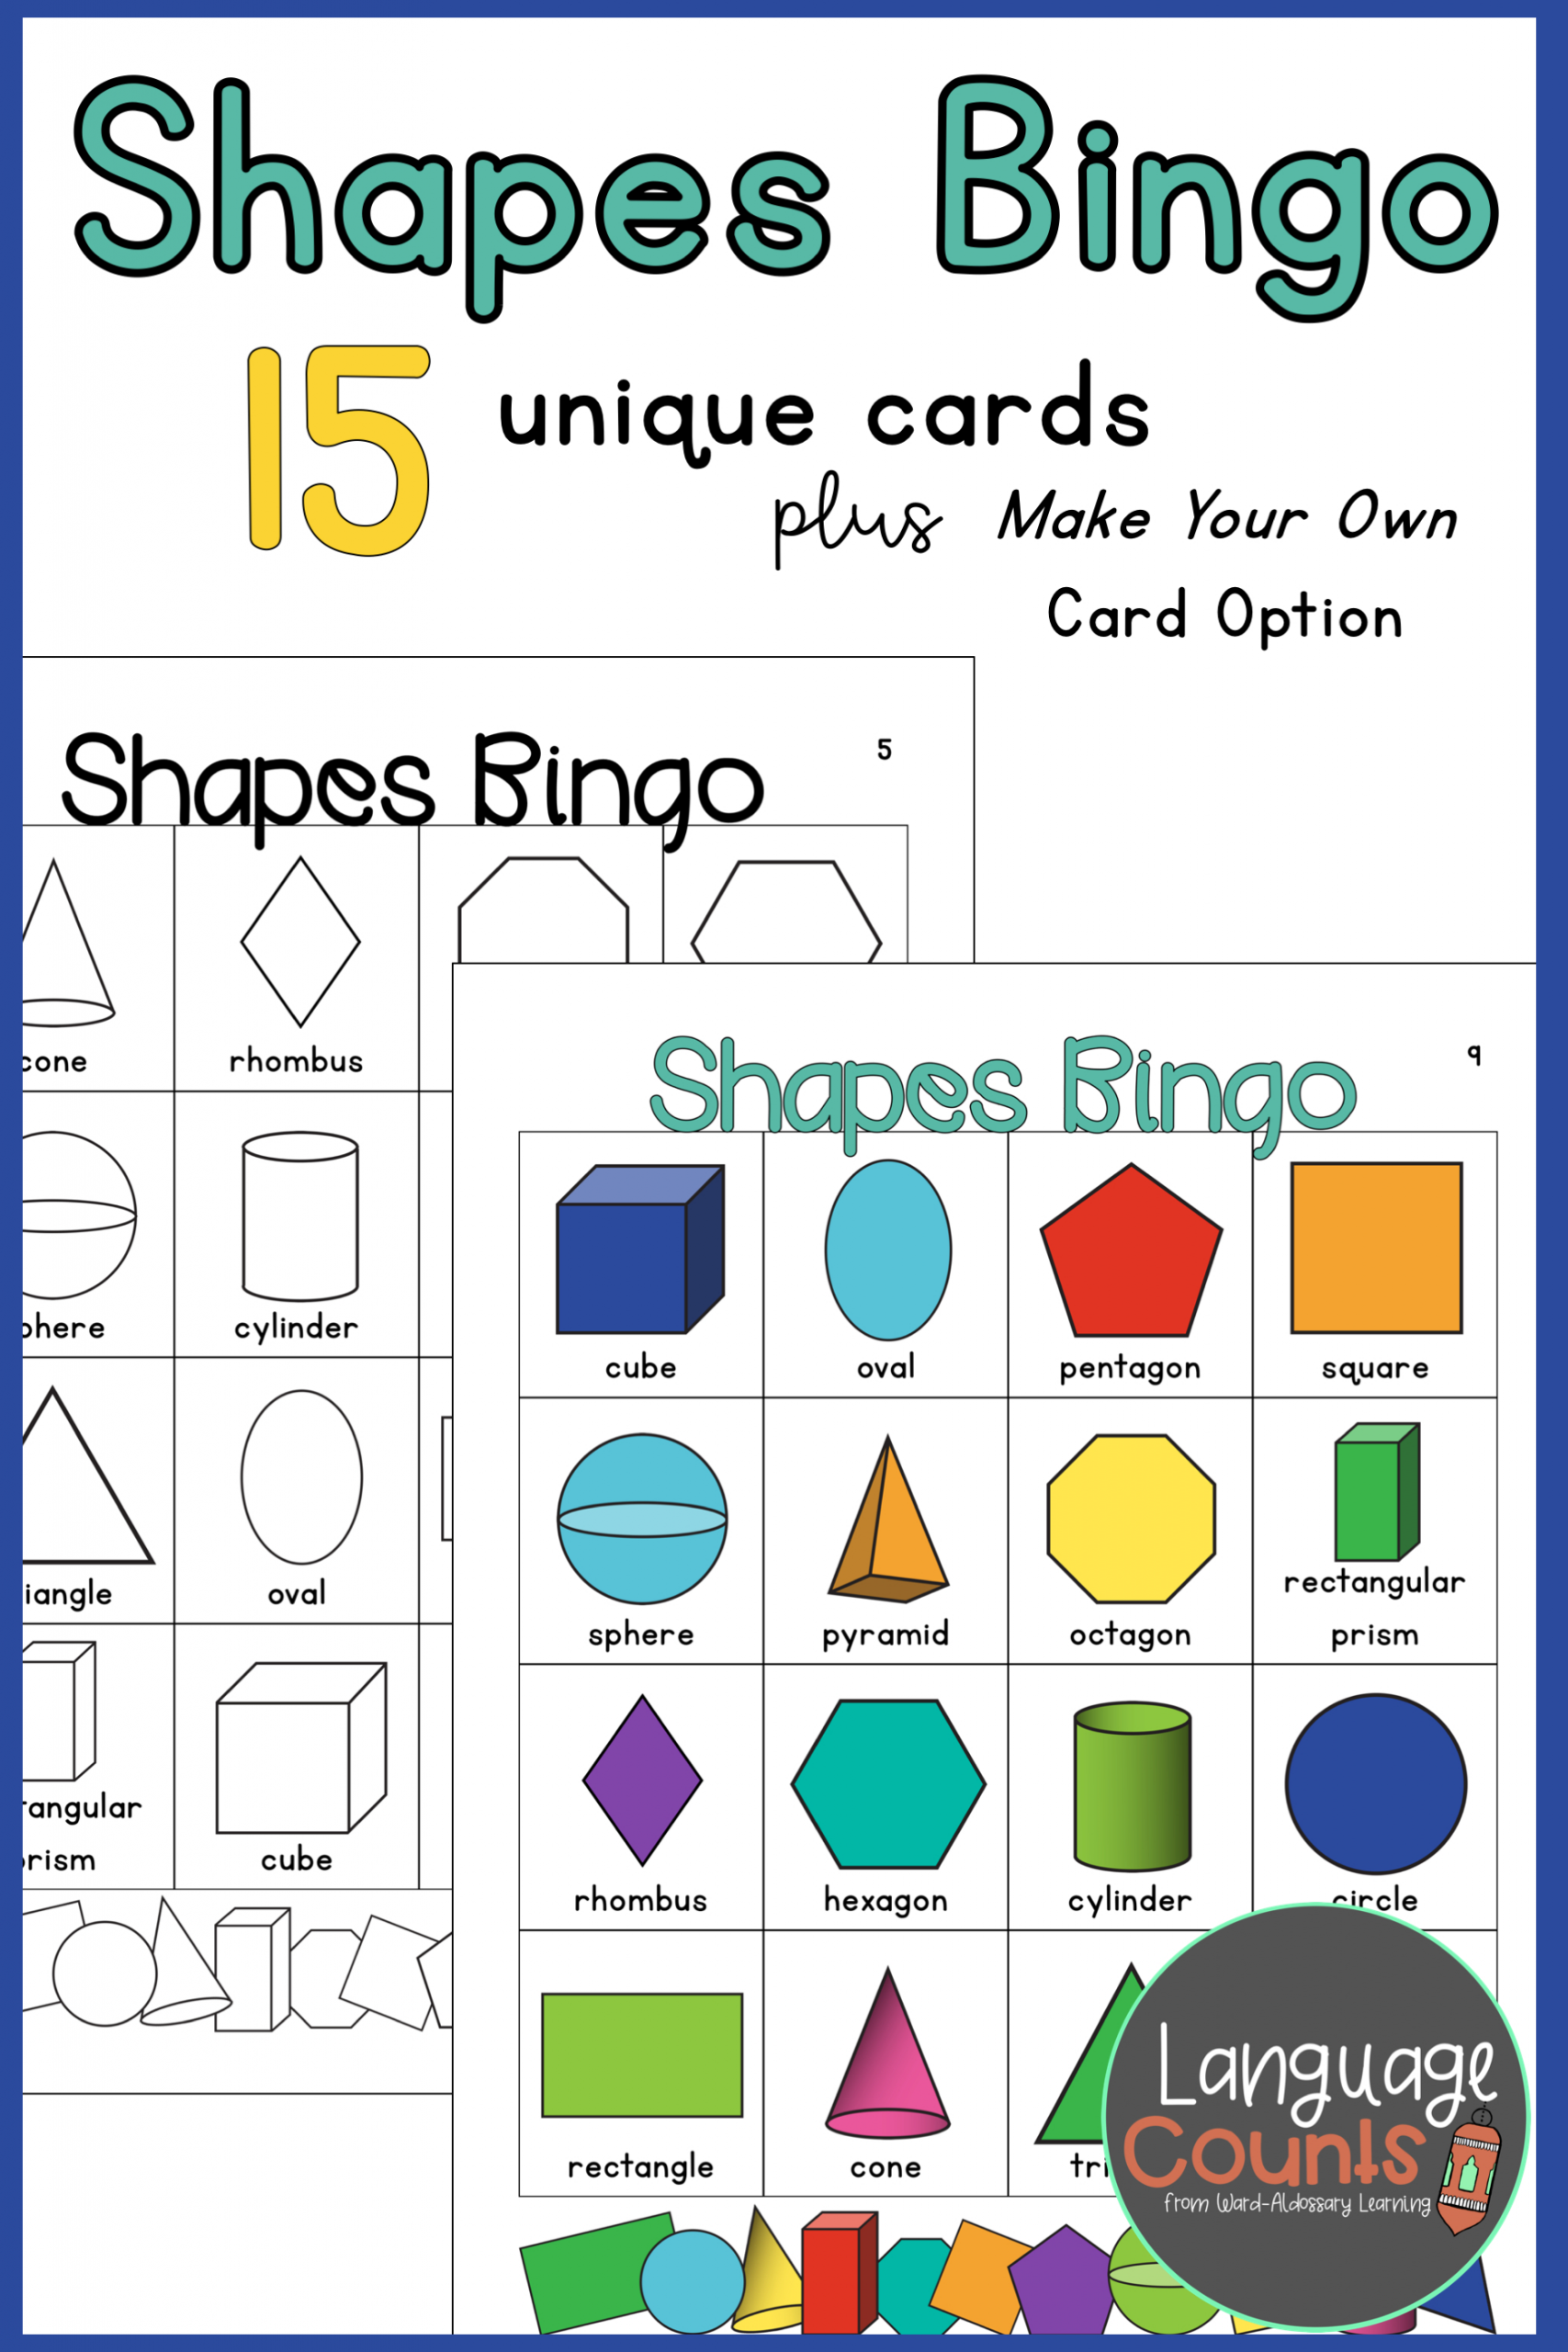 2-D And 3-D Shapes Bingo | Unique Cards, Make Your Own Card